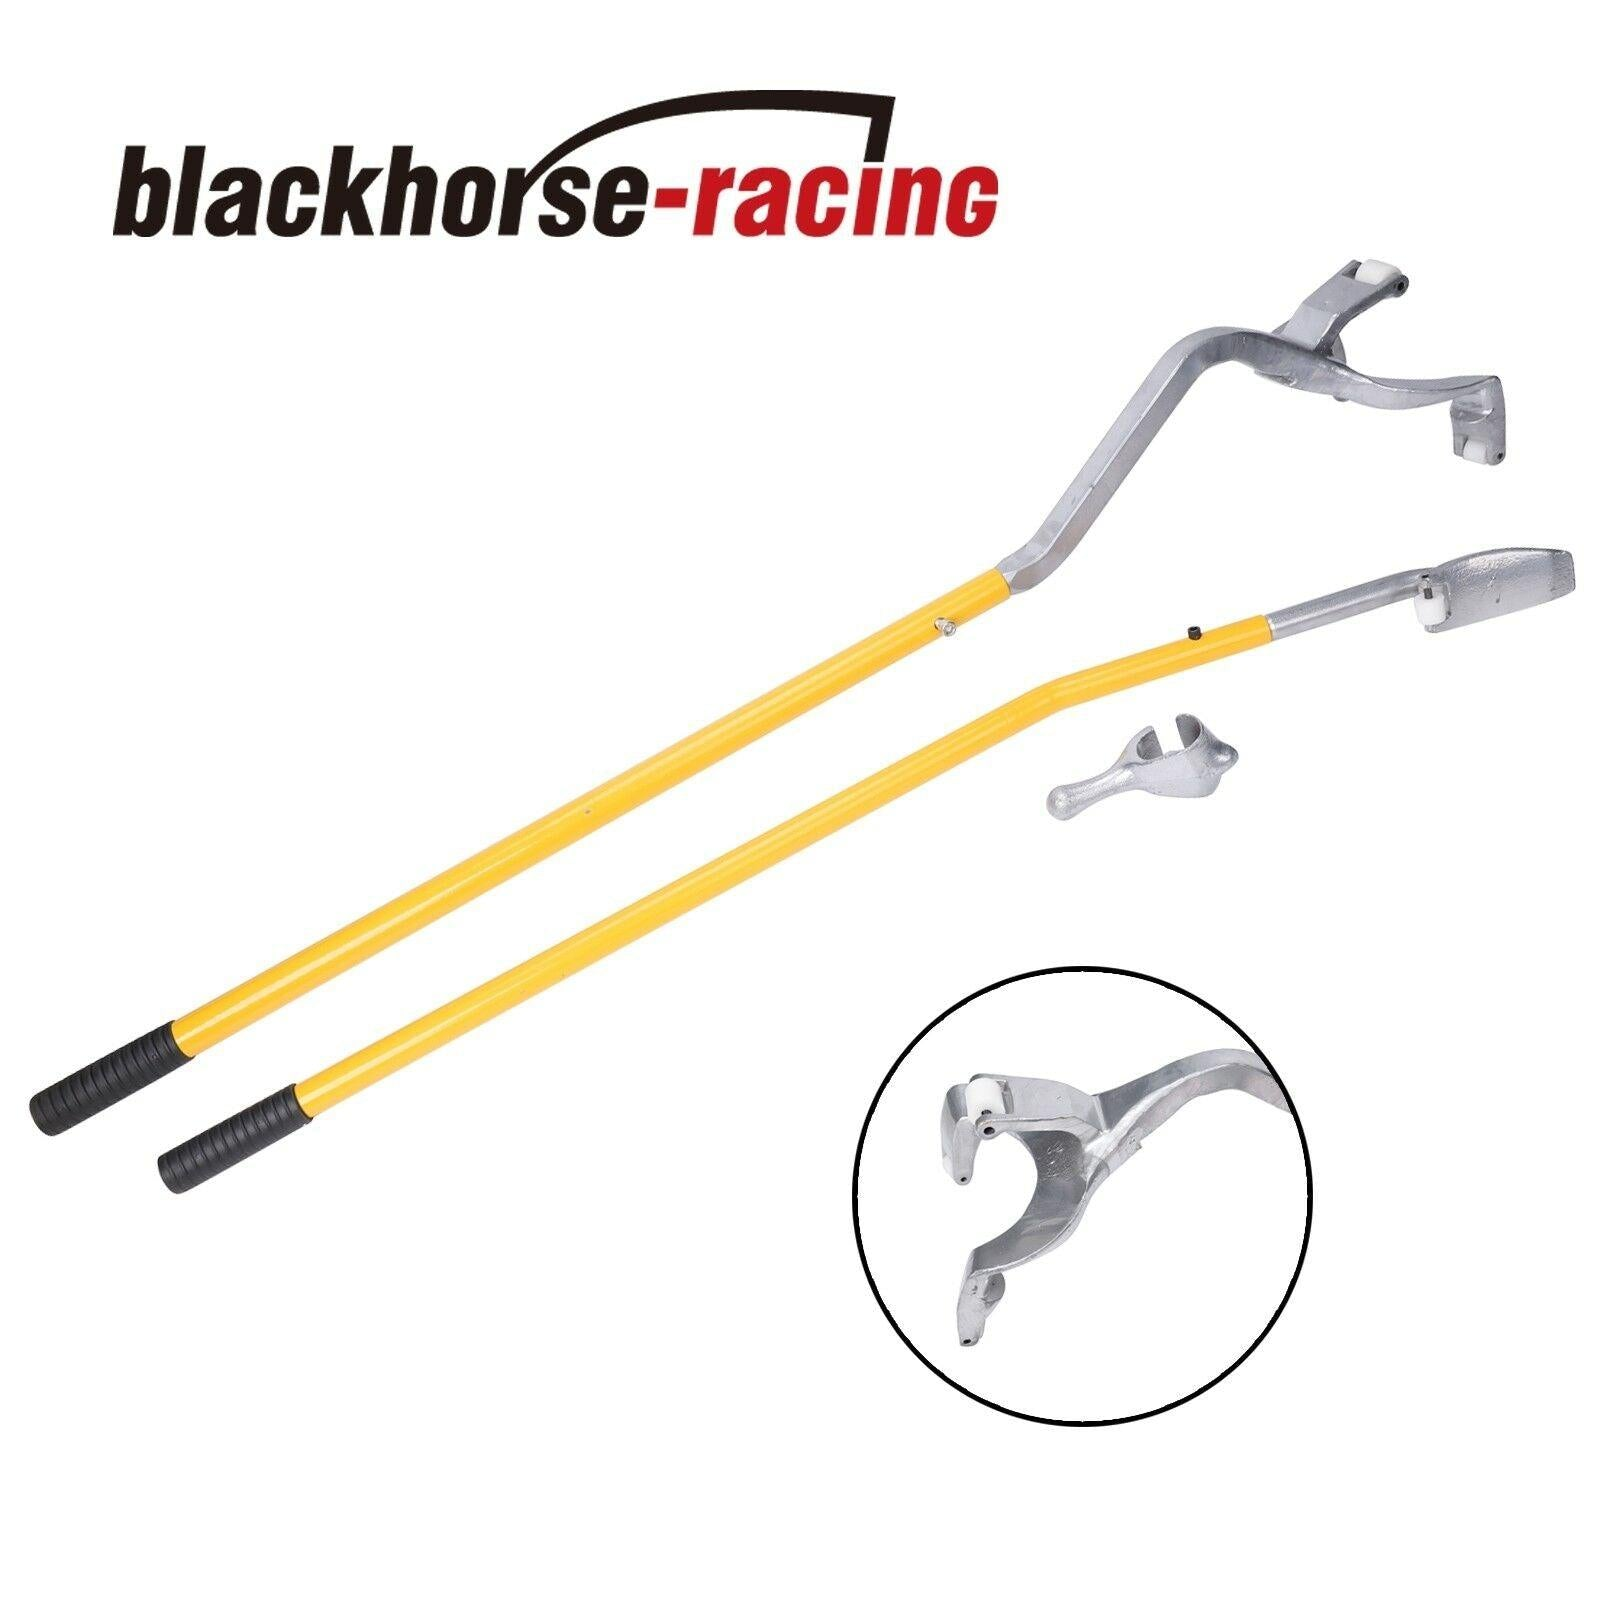 "Blackhorse-Racing 17.5/"" To 24.5/"" Tire Changer Mount Demount Removal Tool Tubeles"